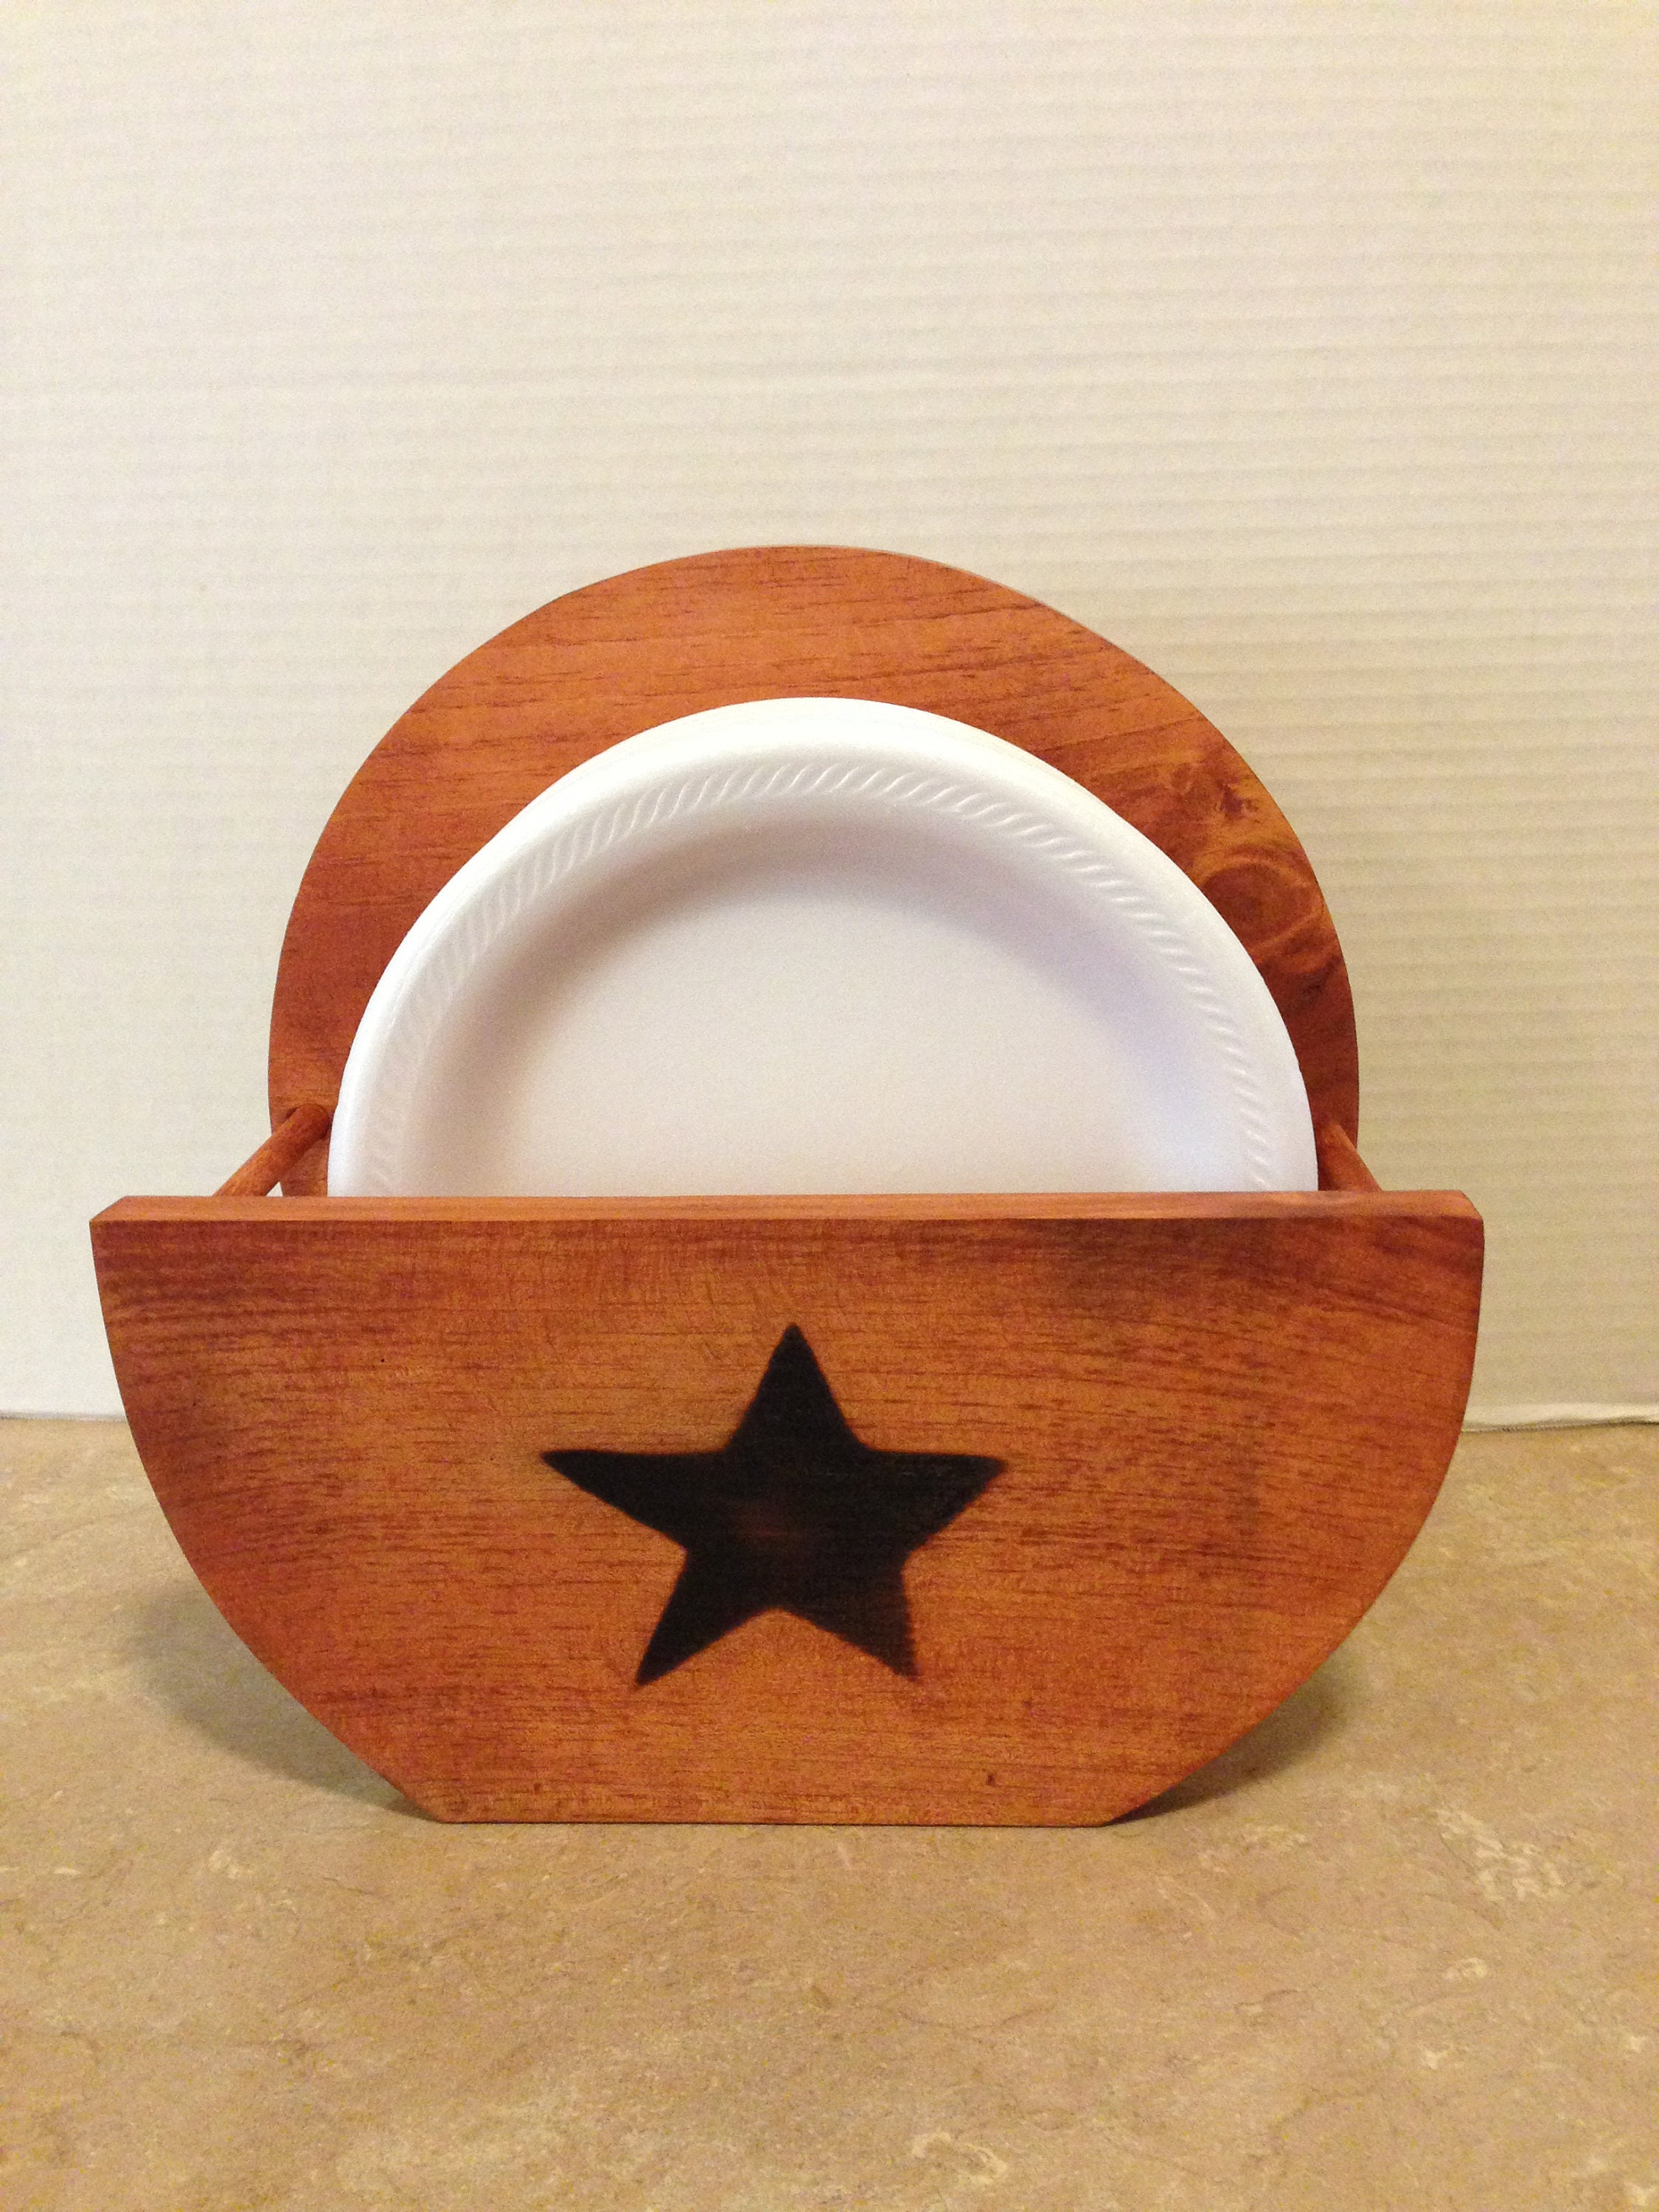 Paper Plate Holder Primitive Star Wooden Plate Holder Country Decor Farmhouse Decor Holder for plates Wood Paper Plate Holder & Paper Plate Holder Primitive Star Wooden Plate Holder Country ...